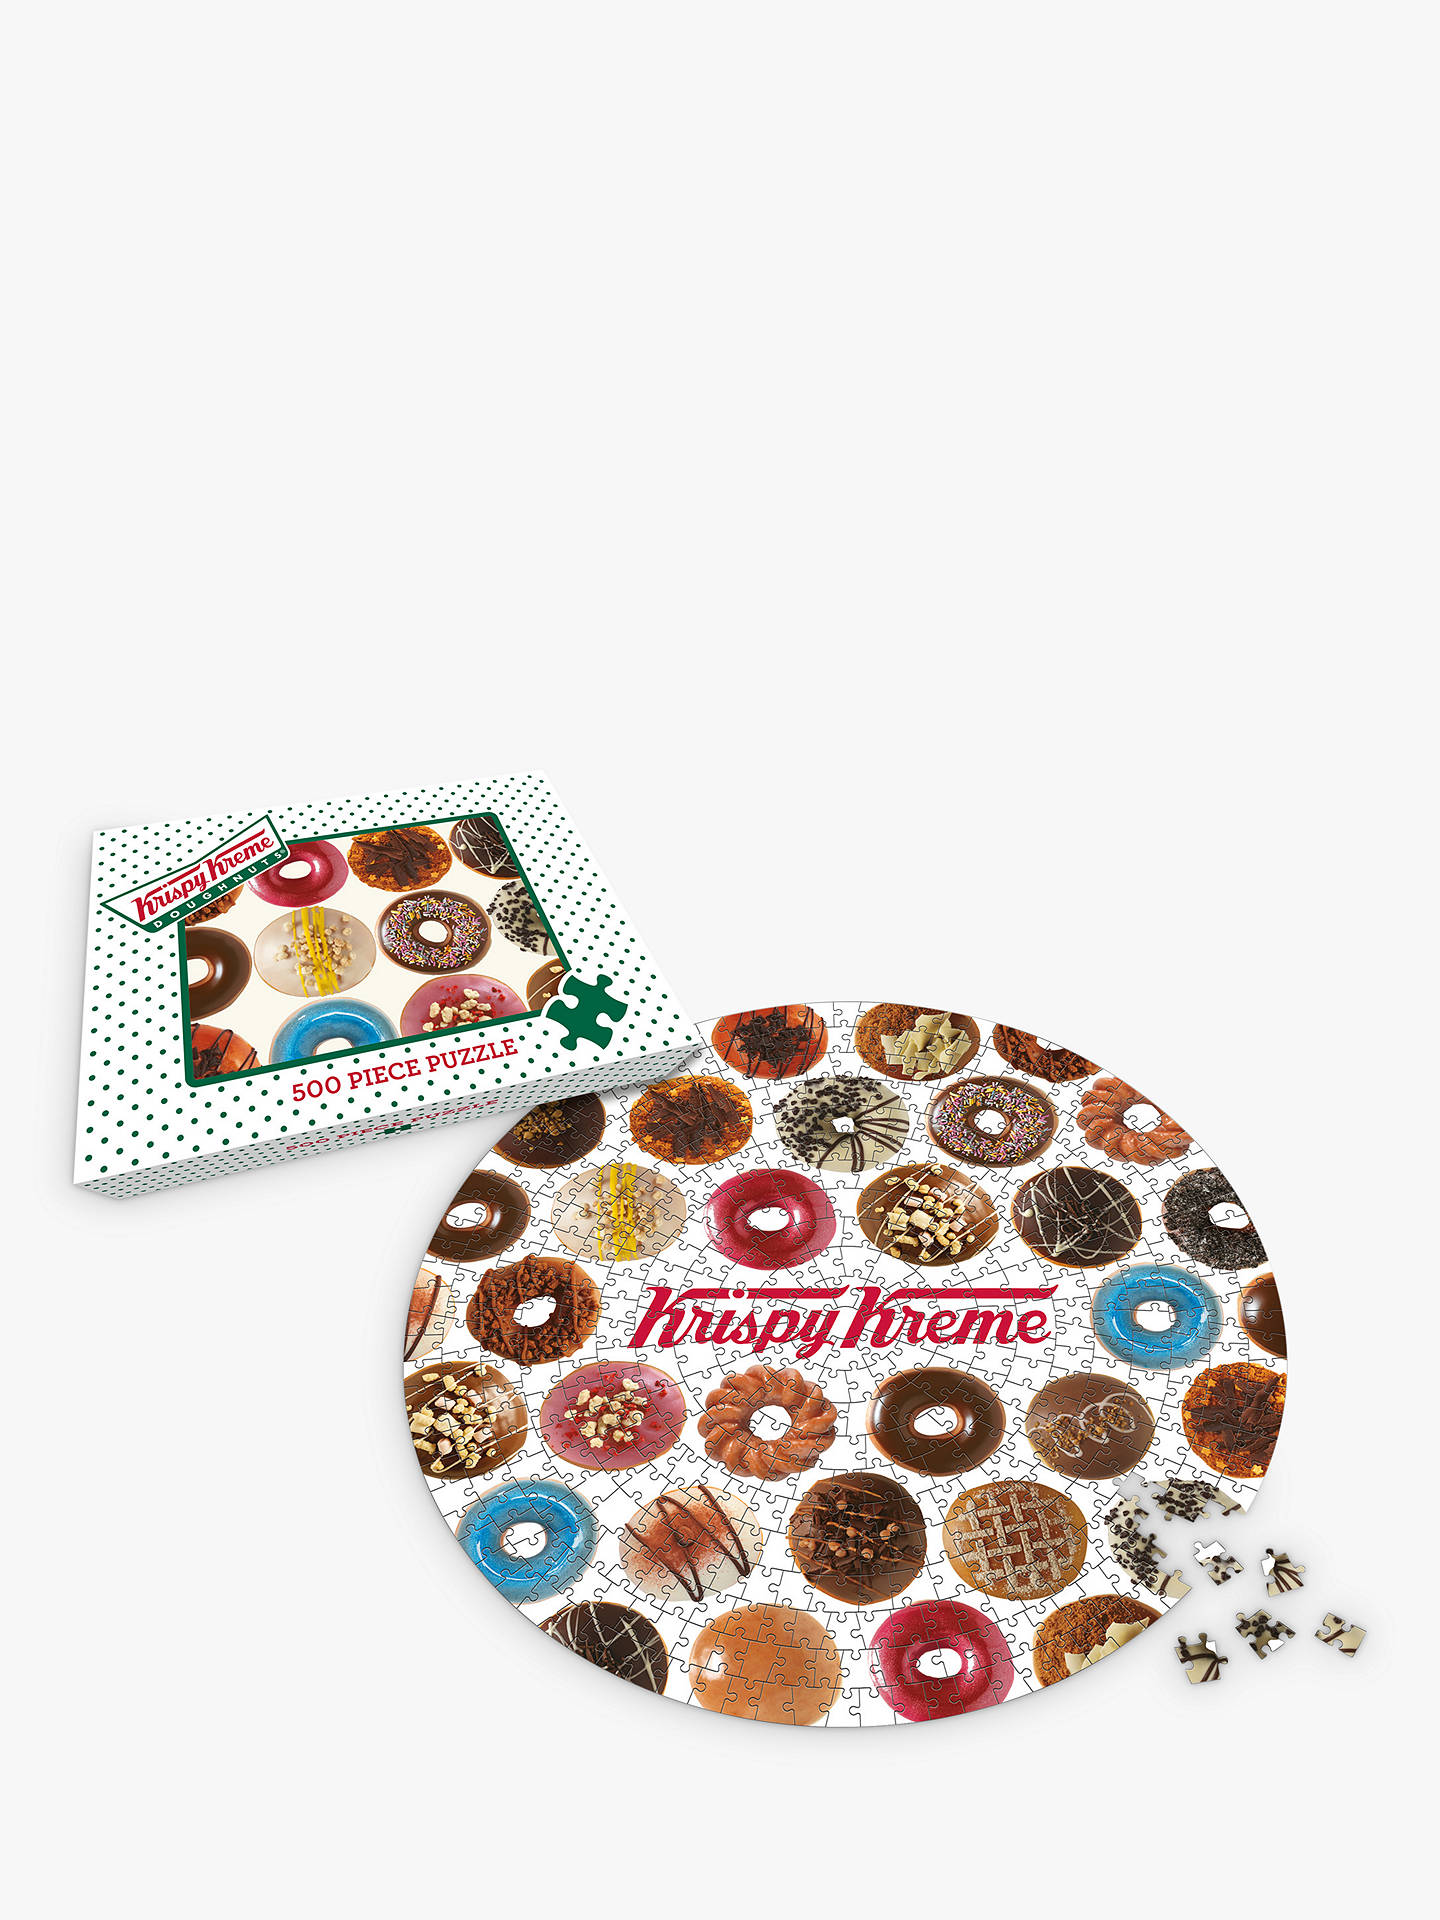 BuyGibsons Krispy Kreme Jigsaw Puzzle, 500 Pieces Online at johnlewis.com